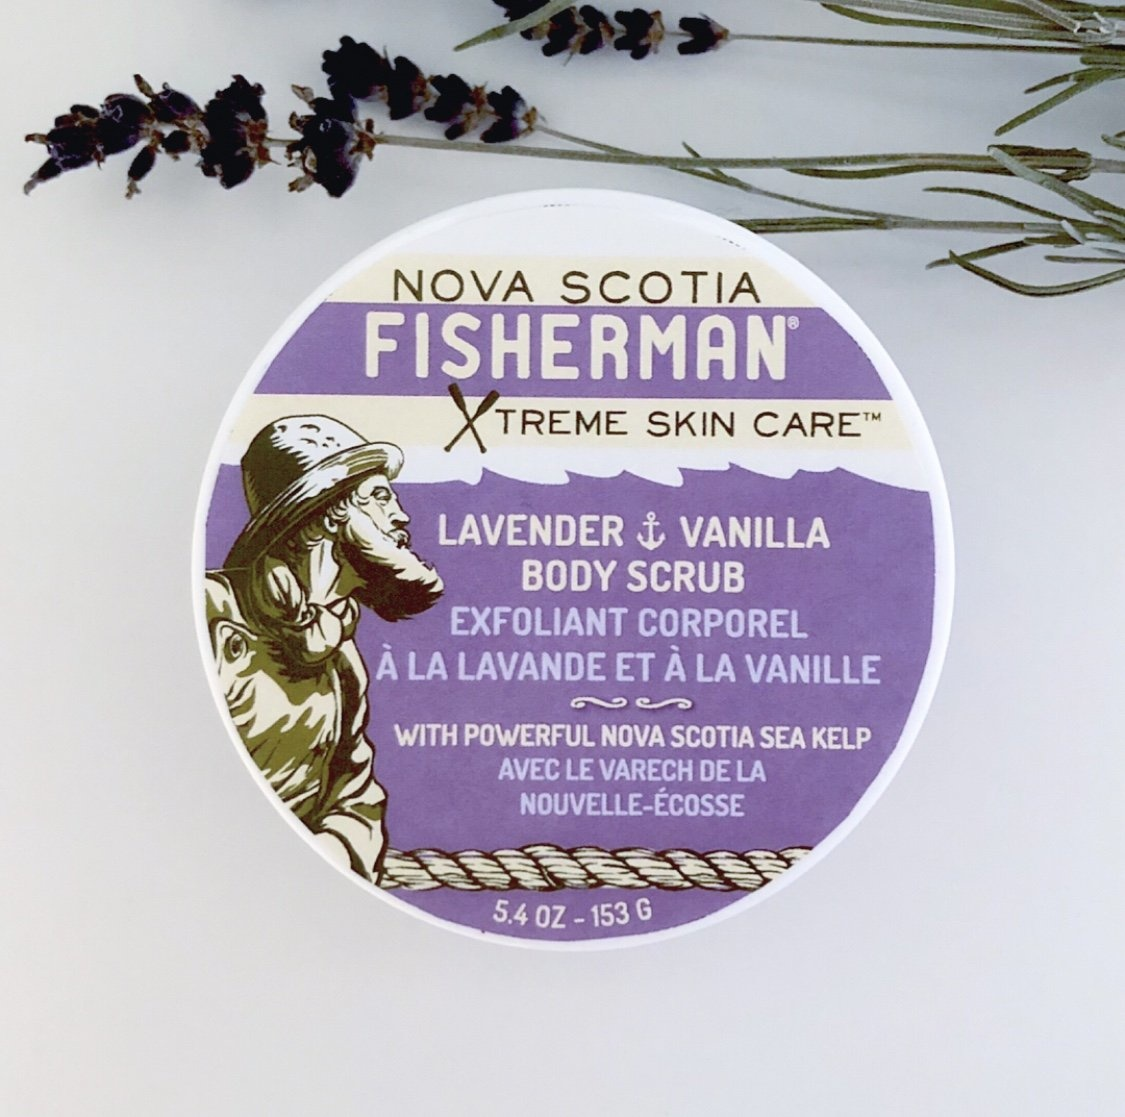 Nova Scotia Fisherman Nova Scotia Fisherman - Lavender&Vanilla Body Scrub 5.40z